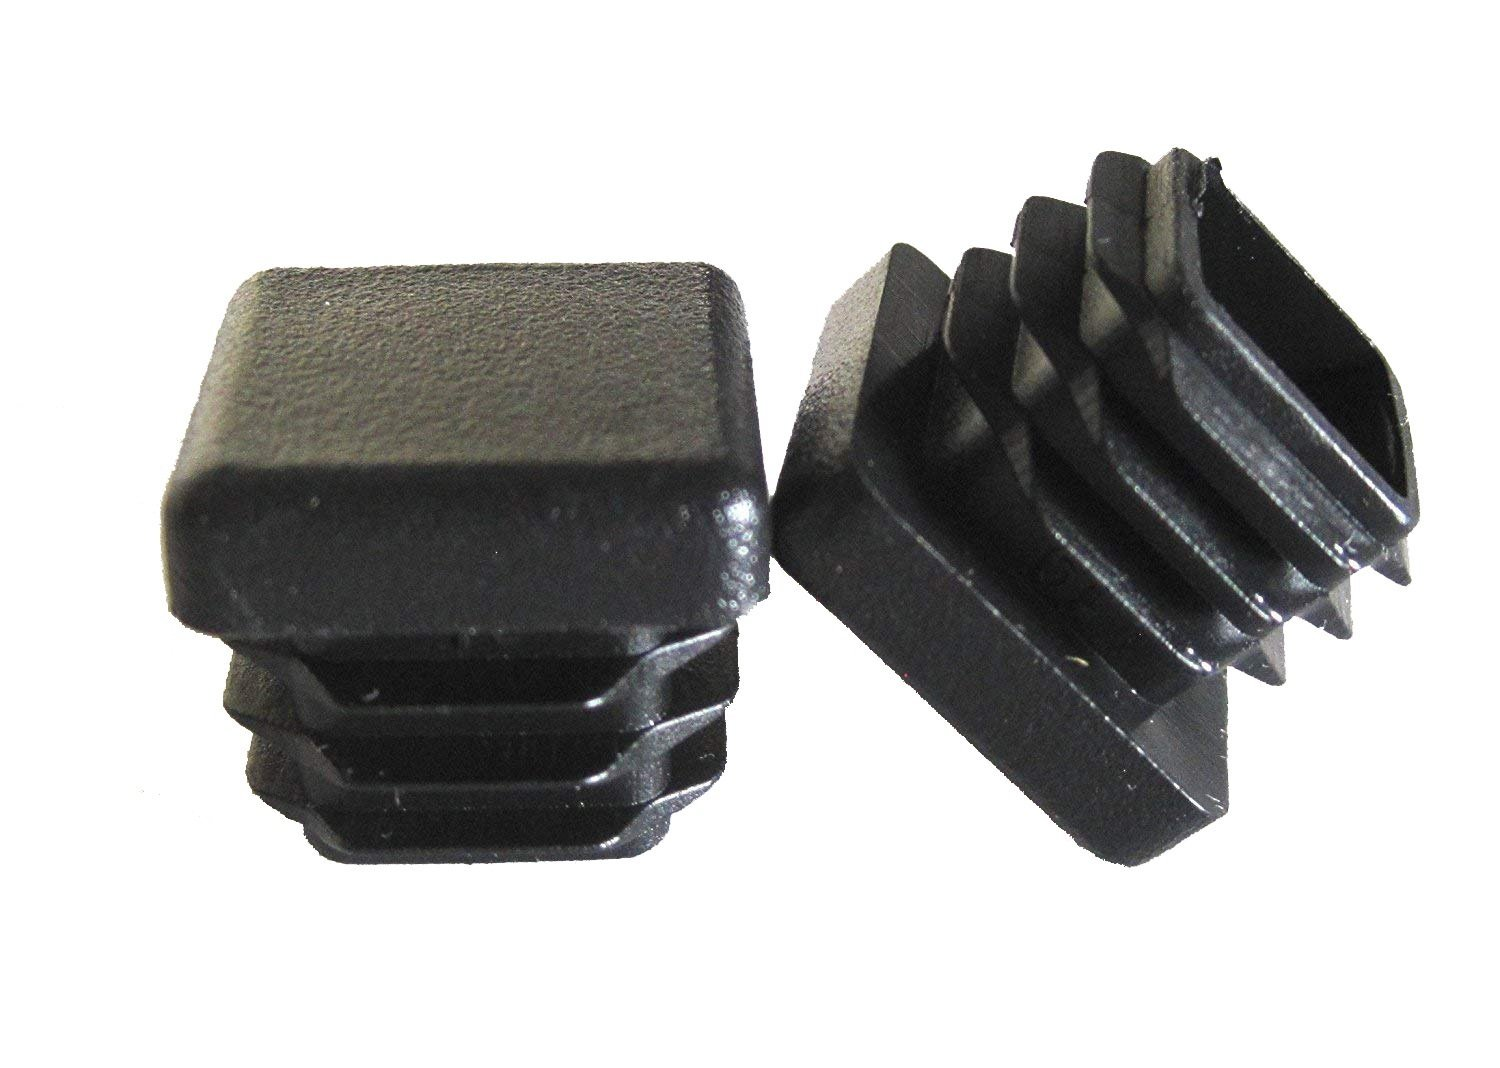 OGC (10 Pack) - 3/4' Black Square Tubing for Plastic Plugs by 3/4 inch Cap Cover Tube Chair Glide Insert Finishing Plug